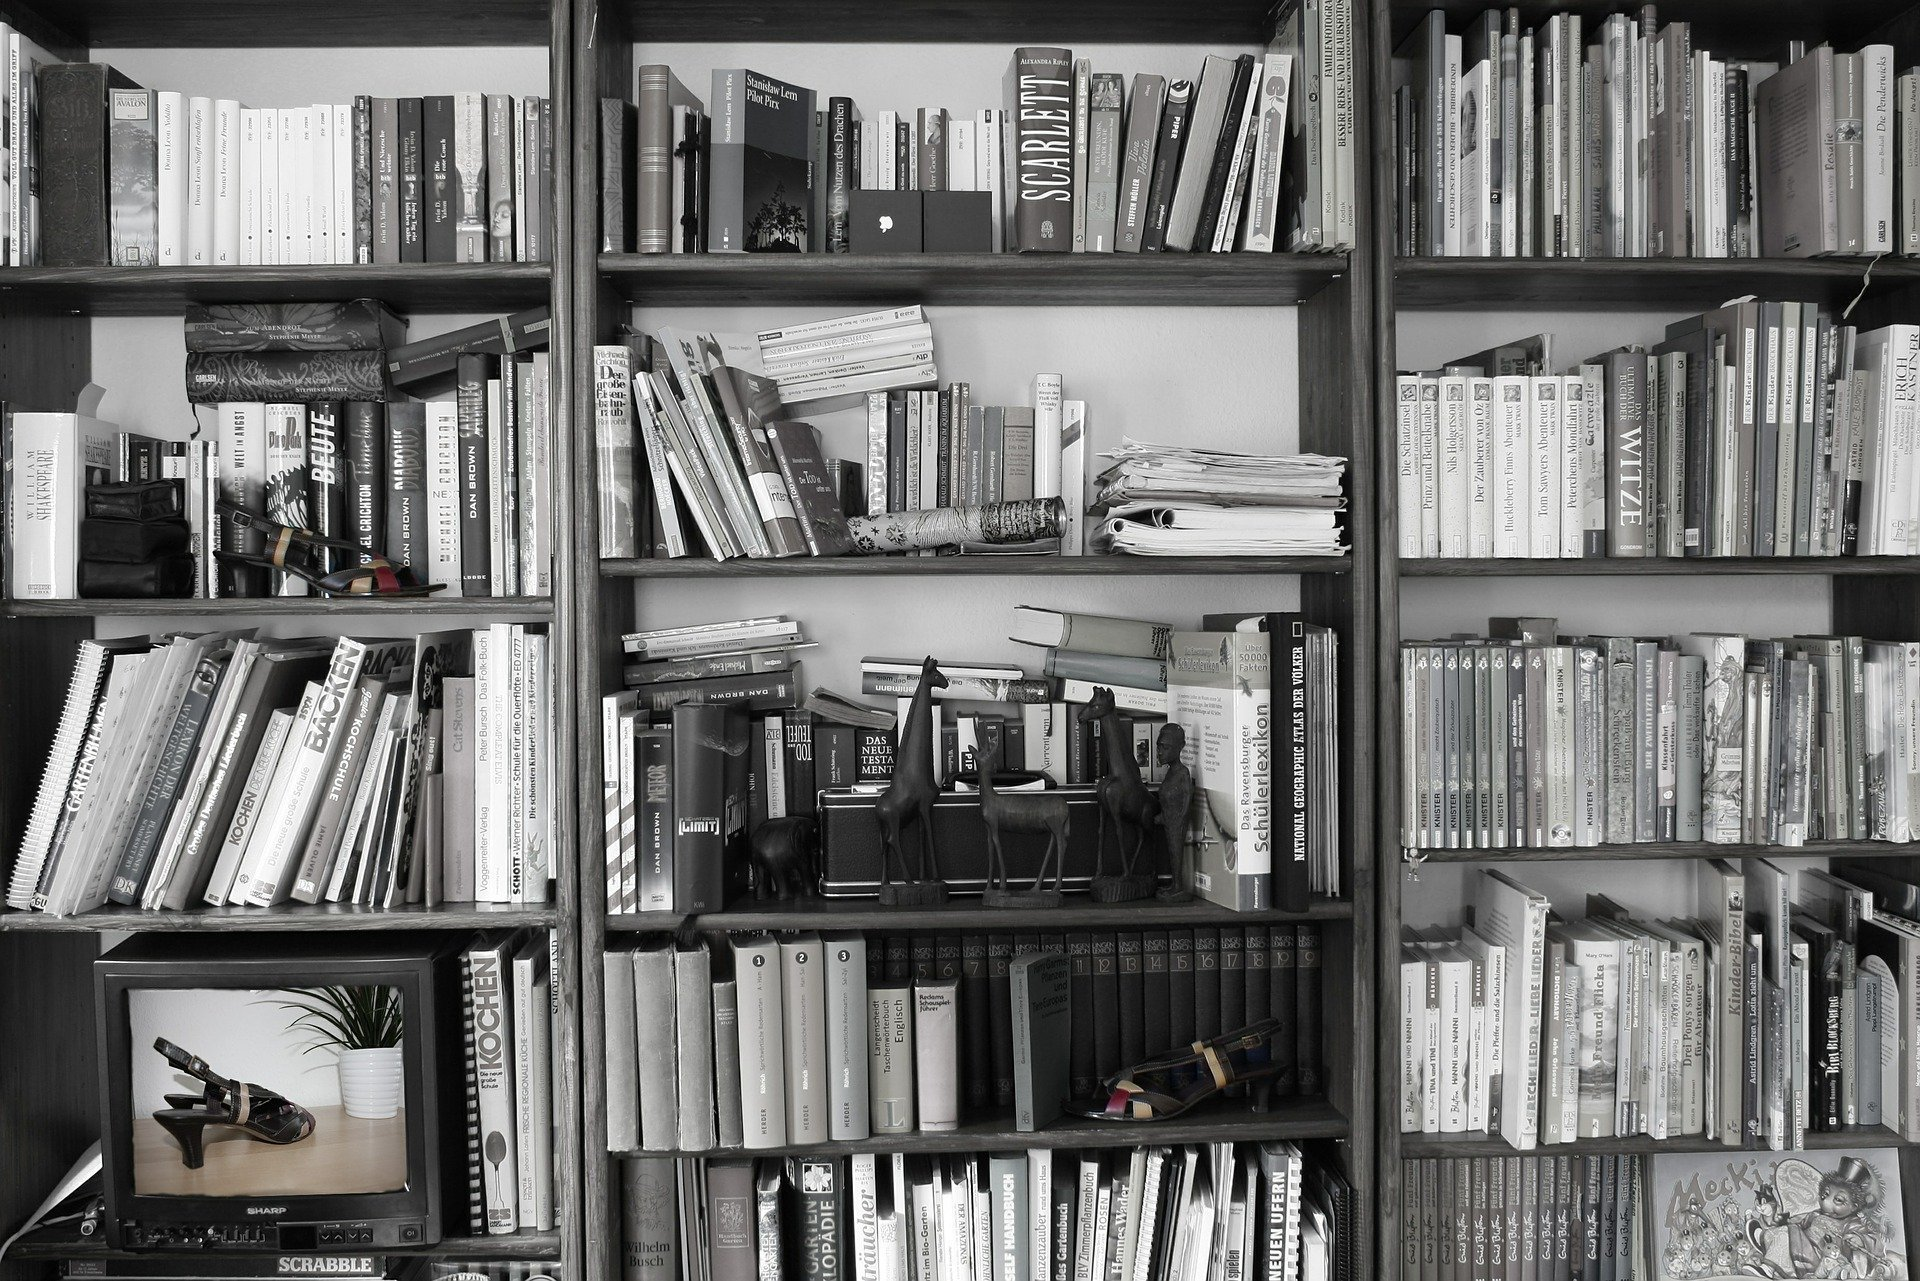 Books - Featured Image